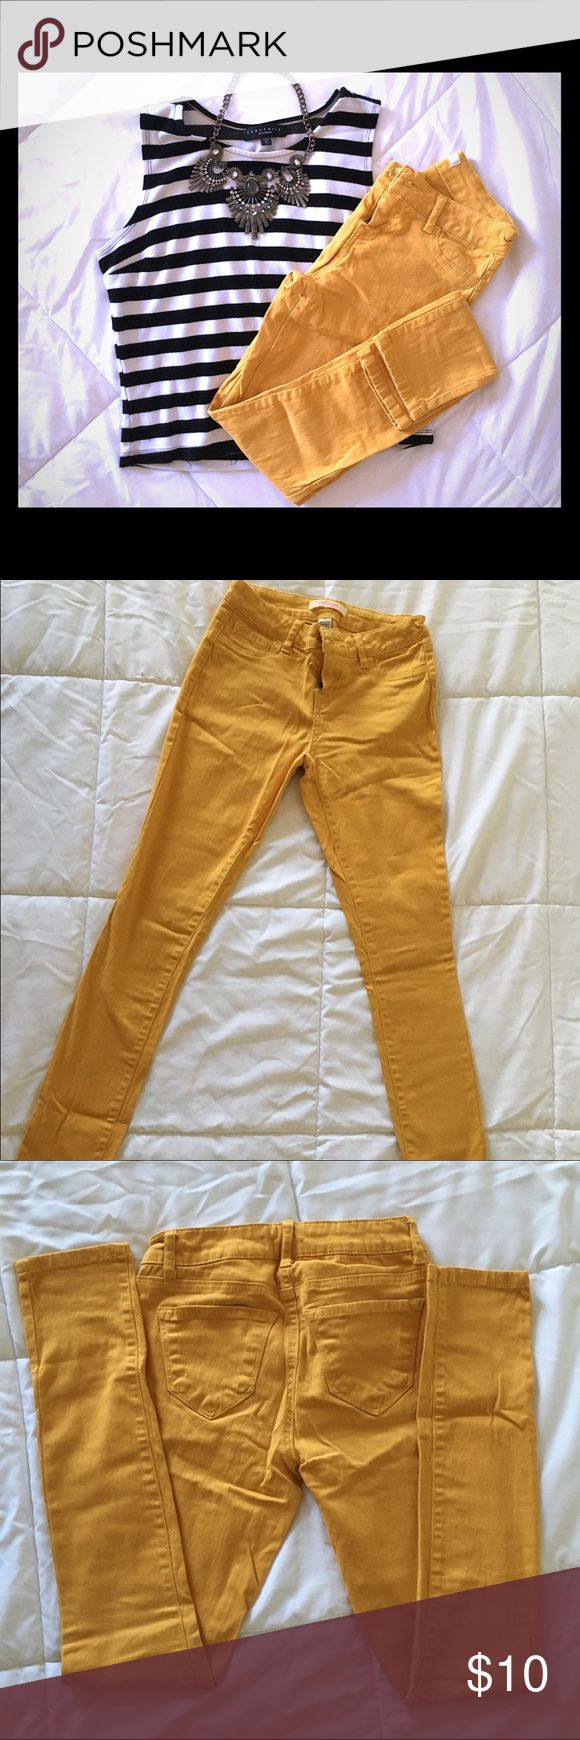 Mustard Yellow Skinny Jeans Mustard yellow skinny jeans. Stretchy material. Good Condition Jeans Skinny